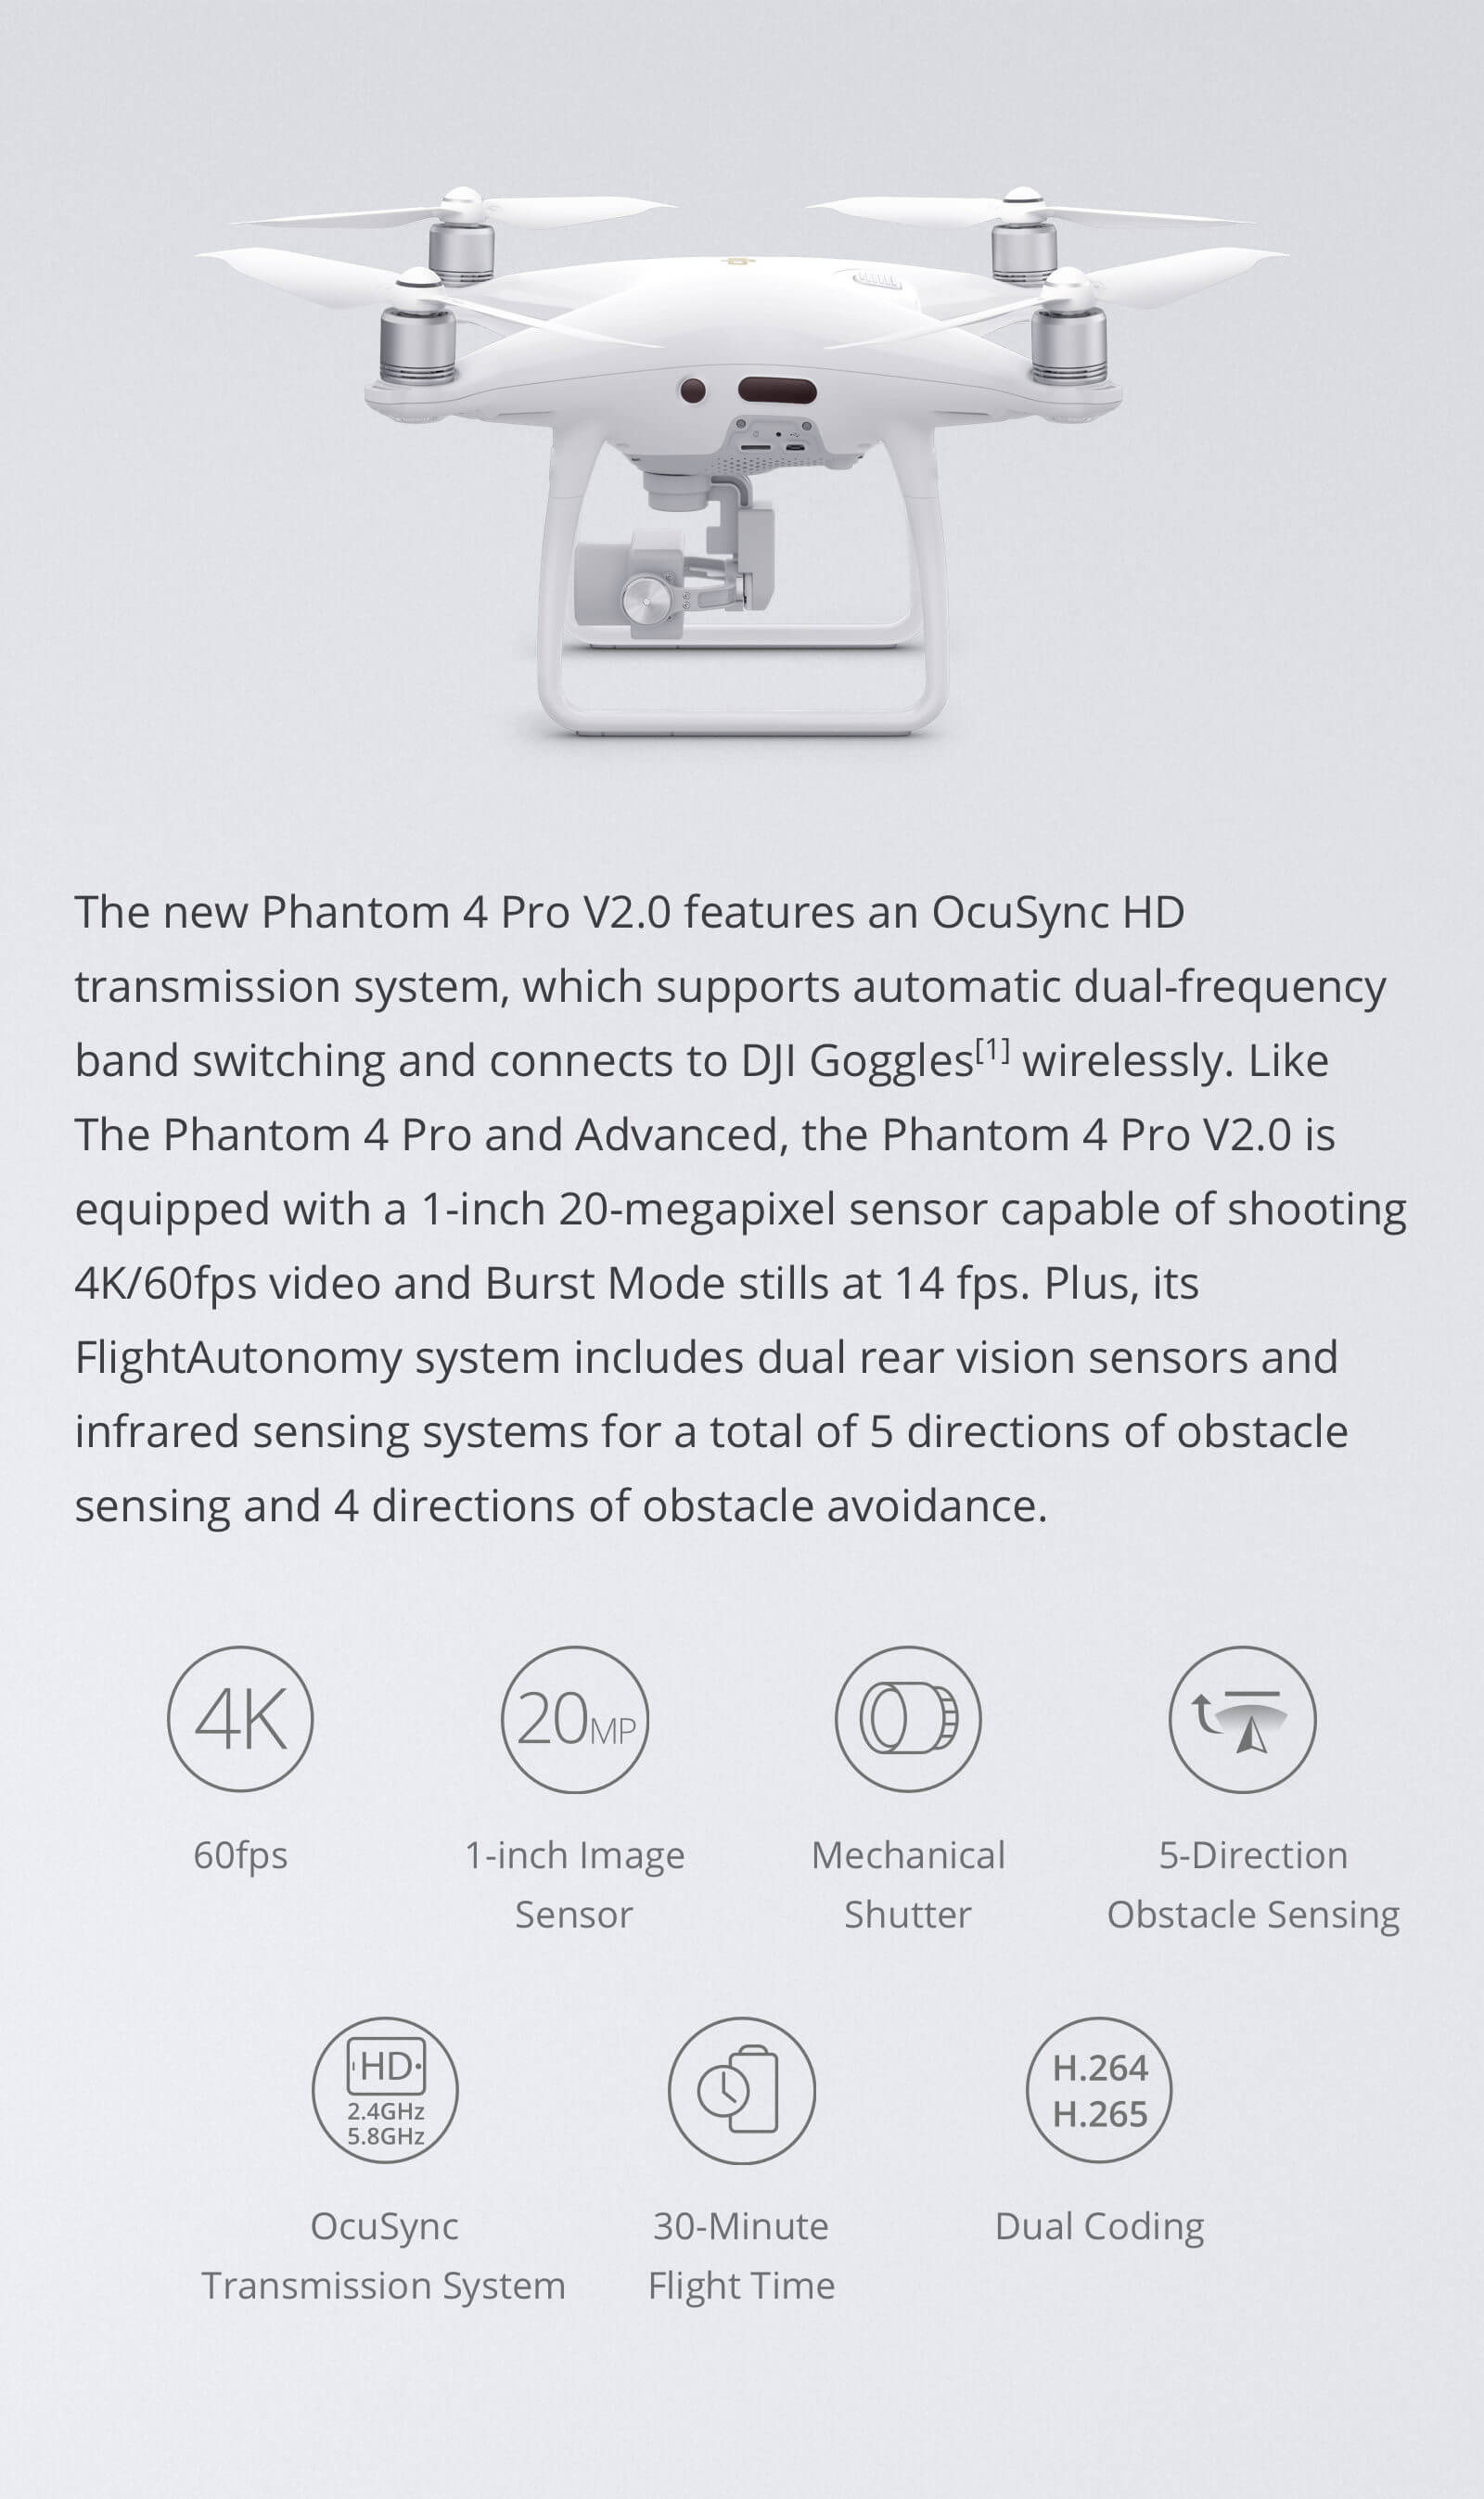 DJI Phantom 4 Pro V2.0 Features